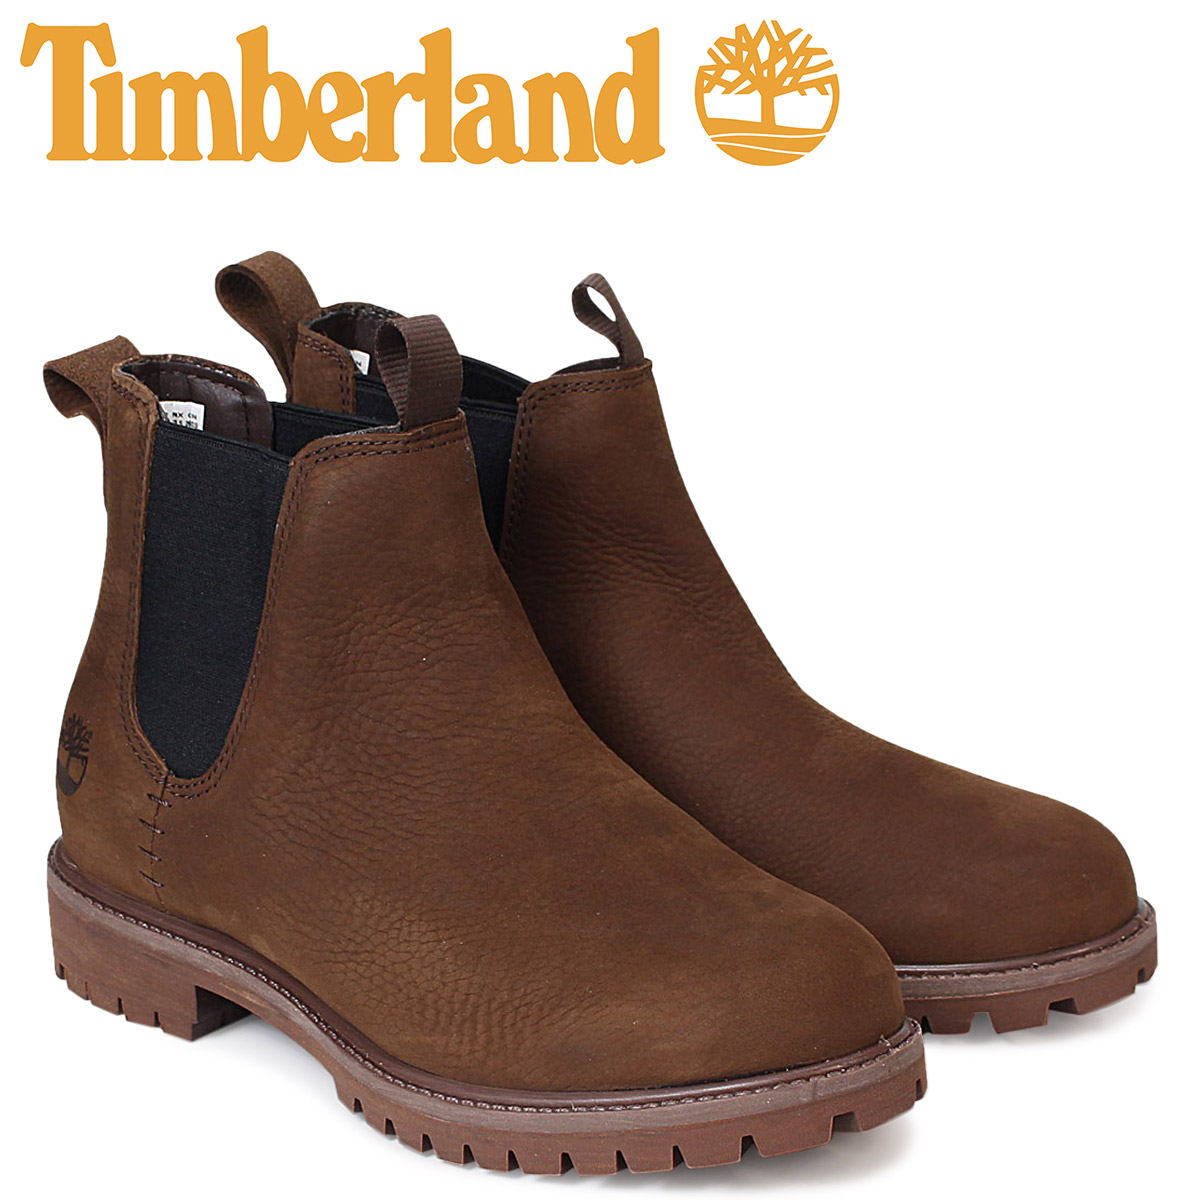 51cbd59419a Timberland 6 inches men's Timberland boots premium waterproof 6INCHI  PREMIUM WATERPROOF CHELSEA BOOTS A1M5G W Wise waterproofing brown [load  planned ...